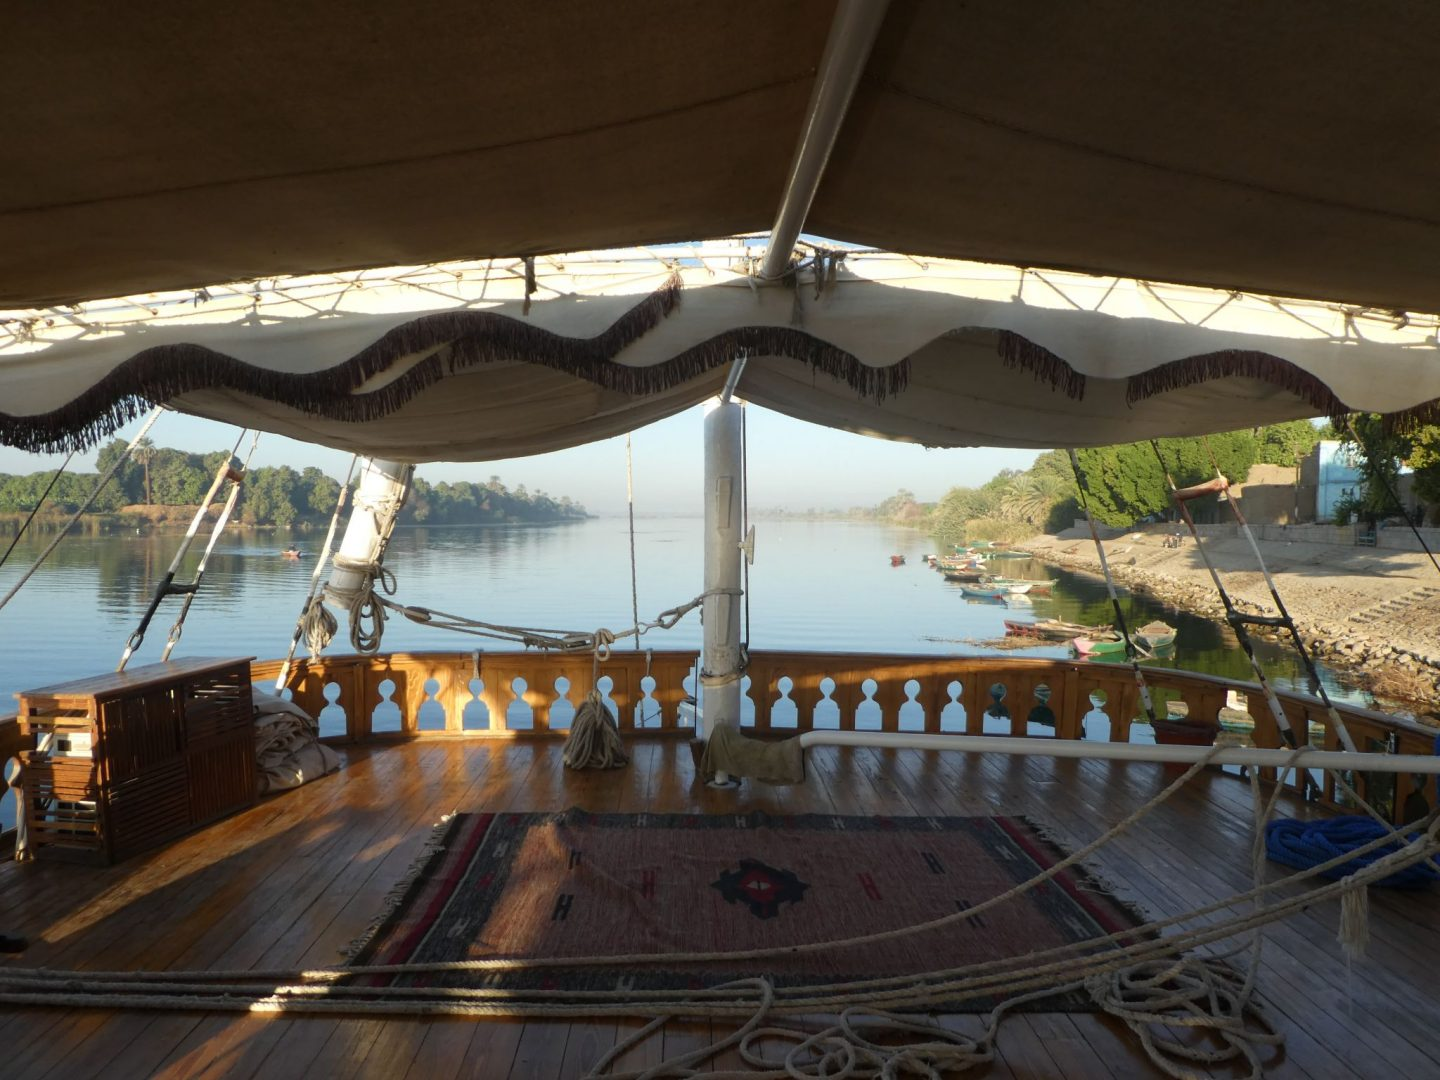 Nile River cruise + Aswan (13 to 21 December 2018)